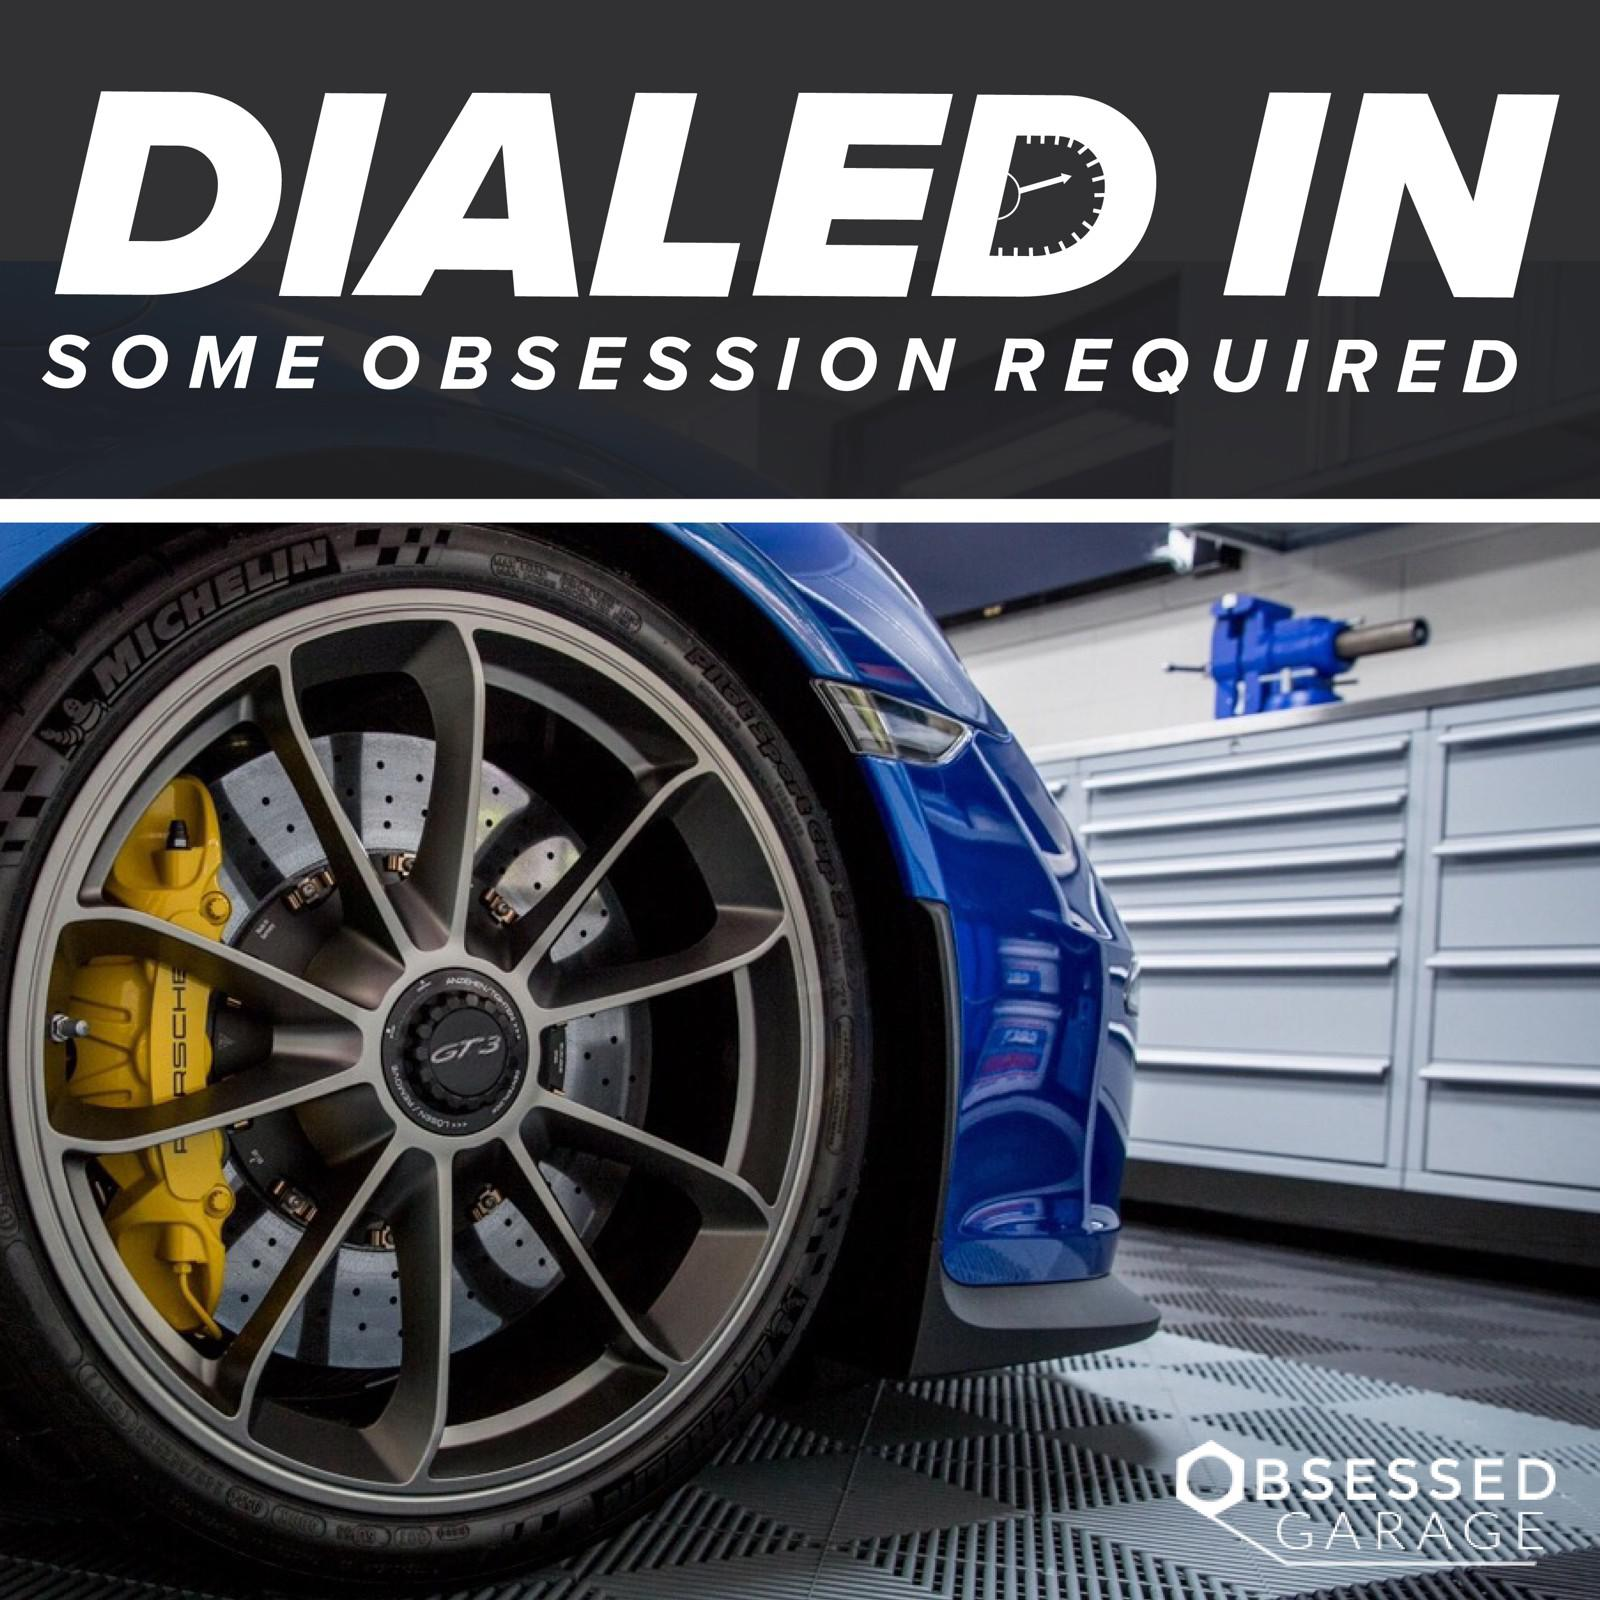 Dialed In - Some Obsession Required